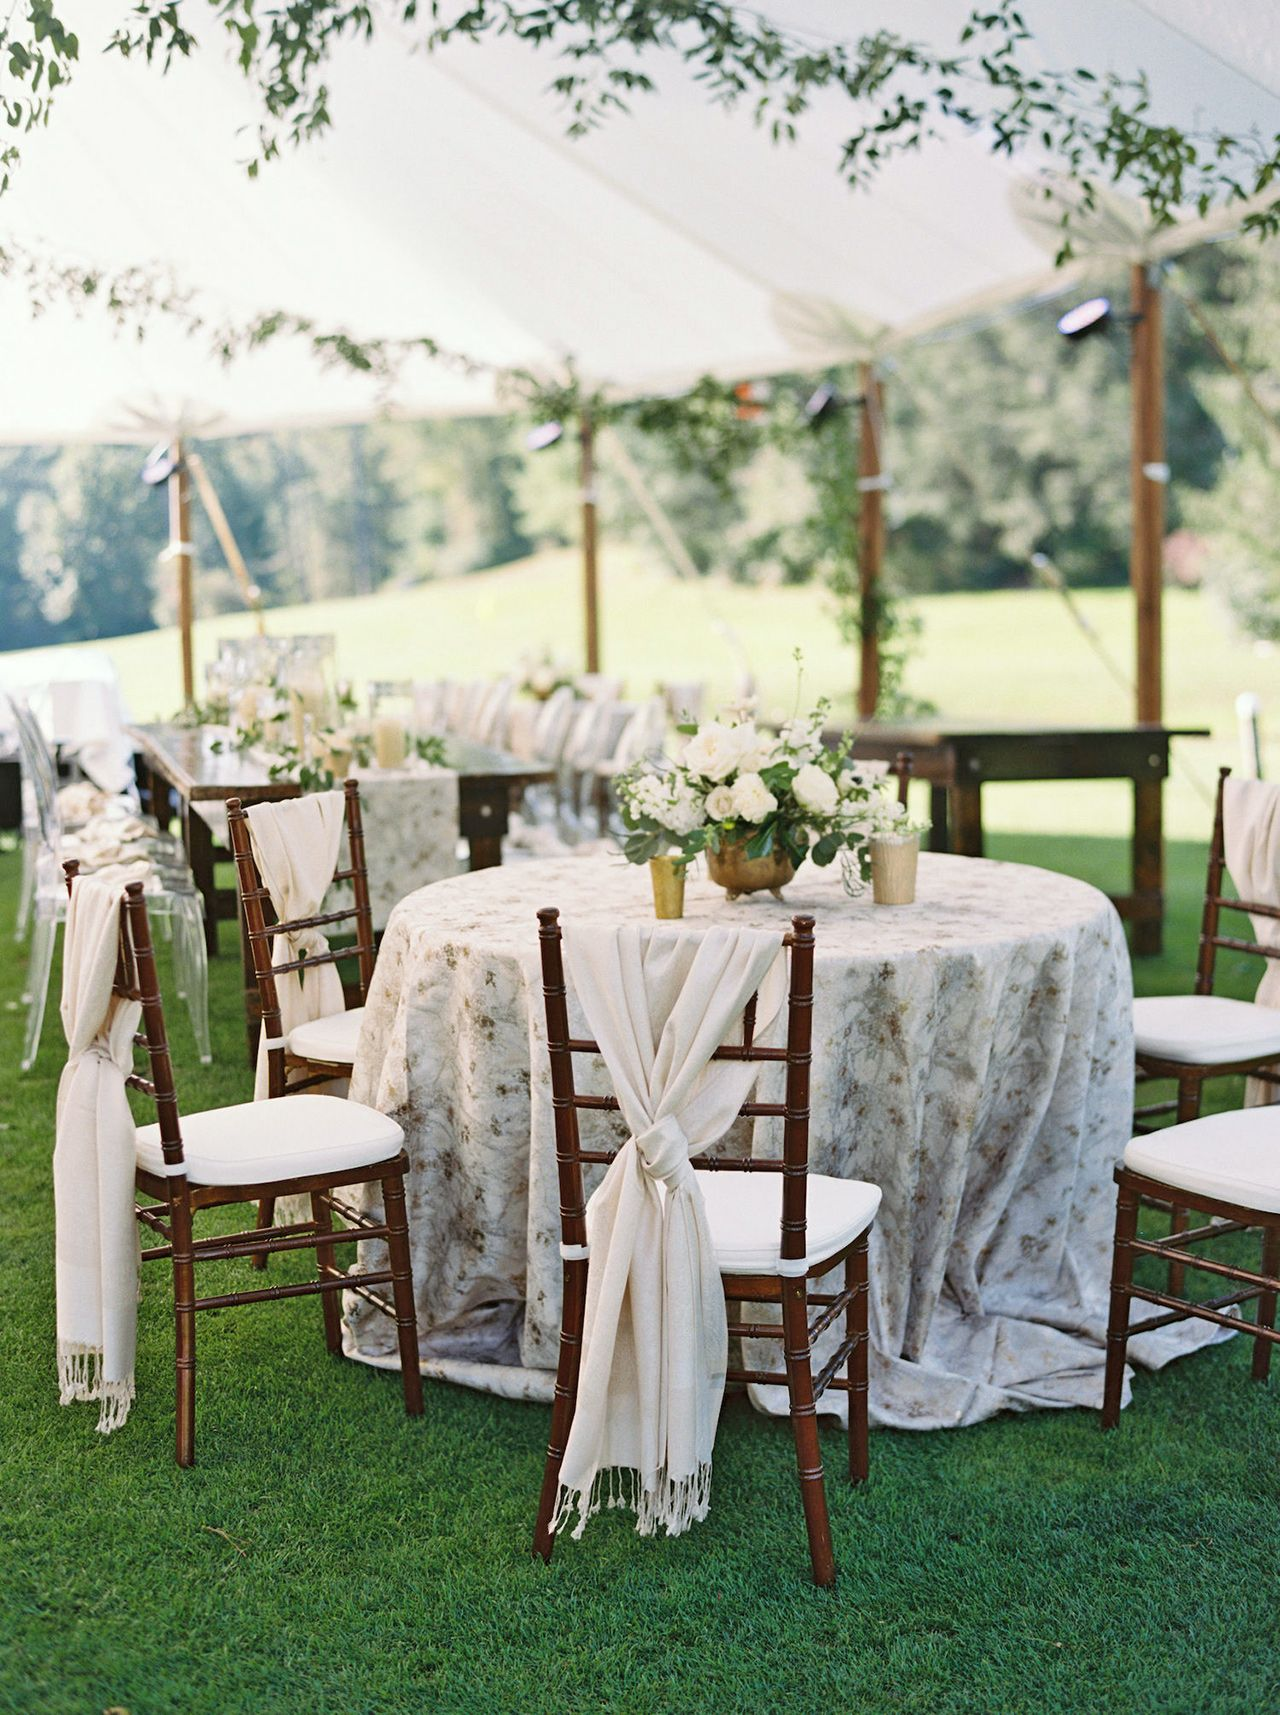 Turn Up Marvin Gaye S Ain T No Mountain High Enough As You Scroll Through This North Carolina Wedding North Carolina Wedding Tent Wedding Tent Reception